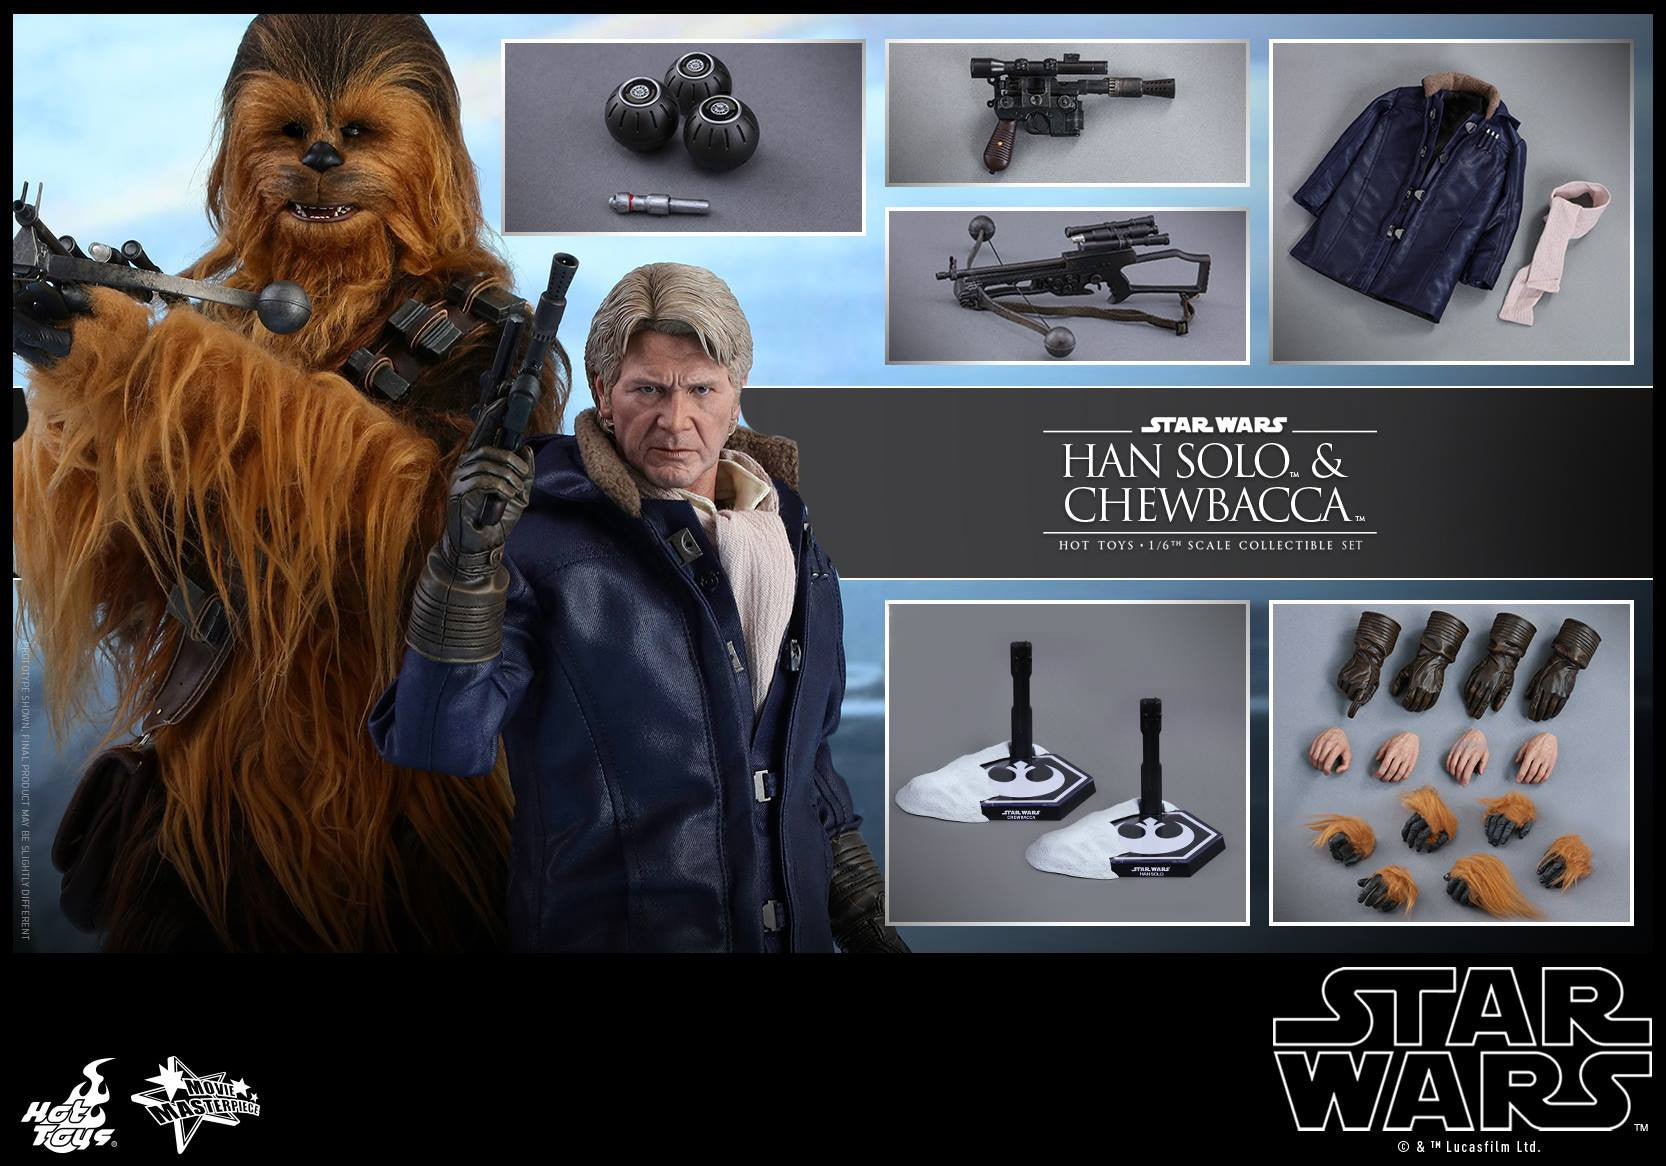 Hot Toys - MMS376 - Star Wars: The Force Awakens - Han Solo & Chewbacca Set - Marvelous Toys - 8